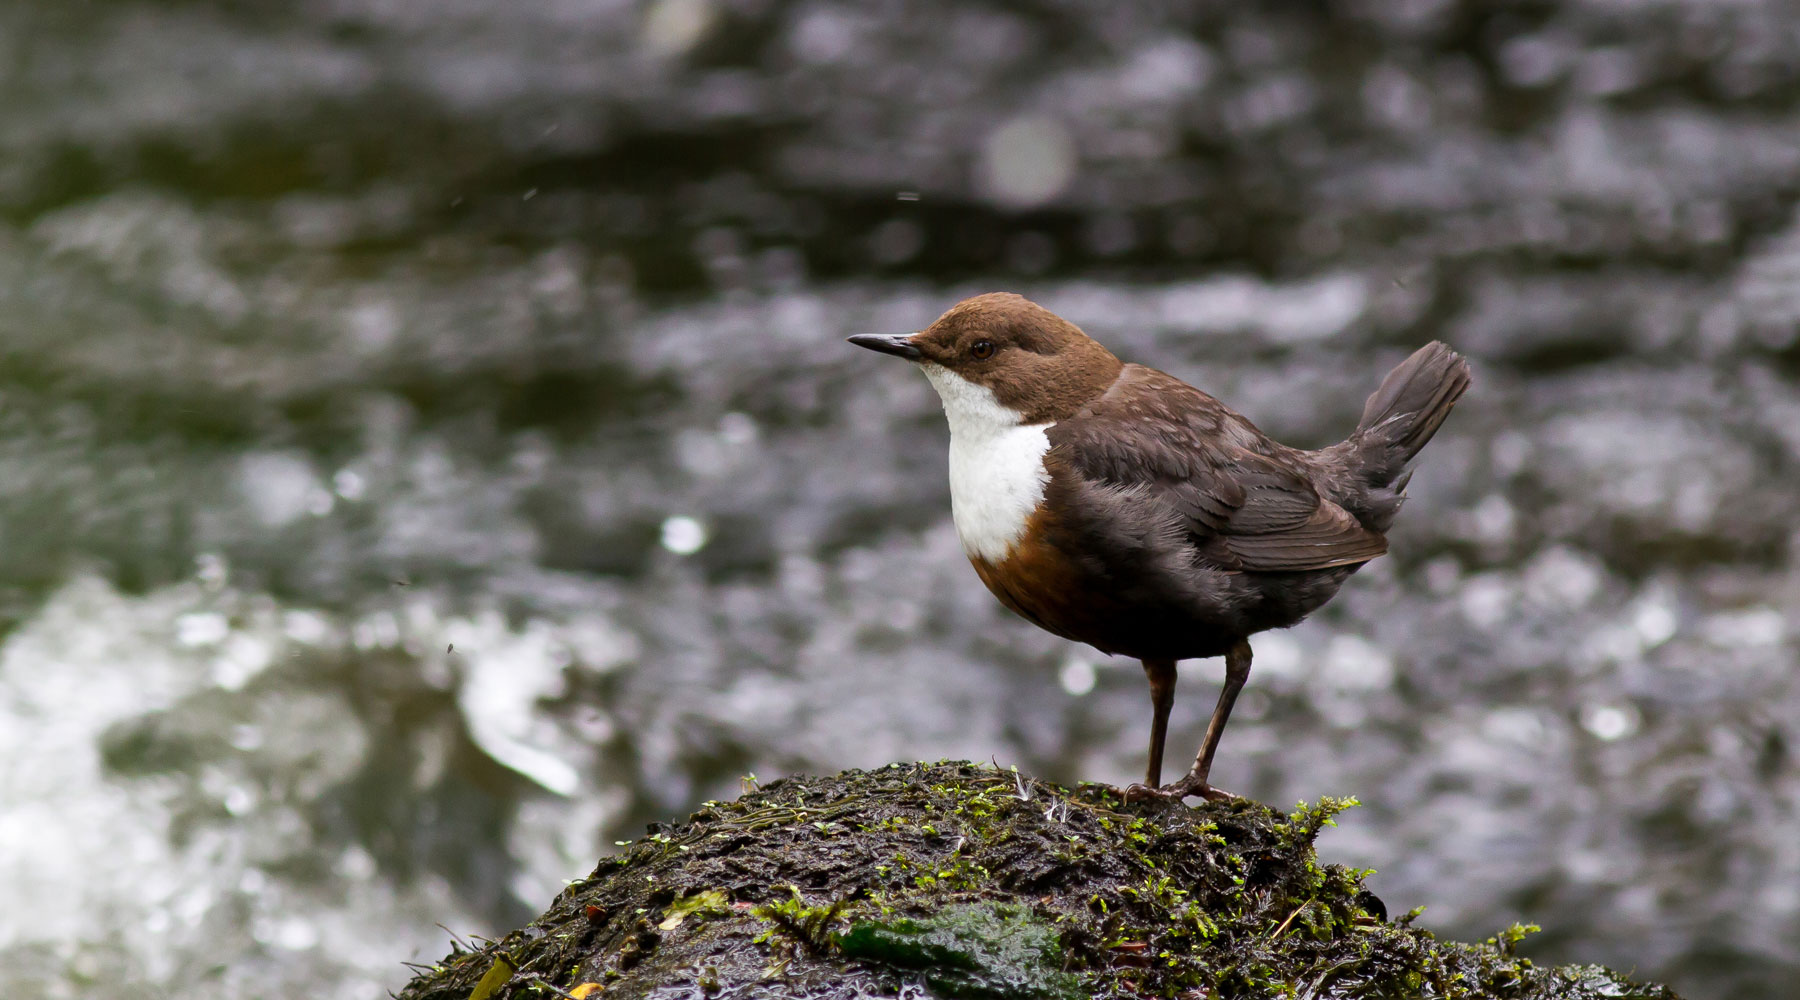 Mike Snelle | Dipper